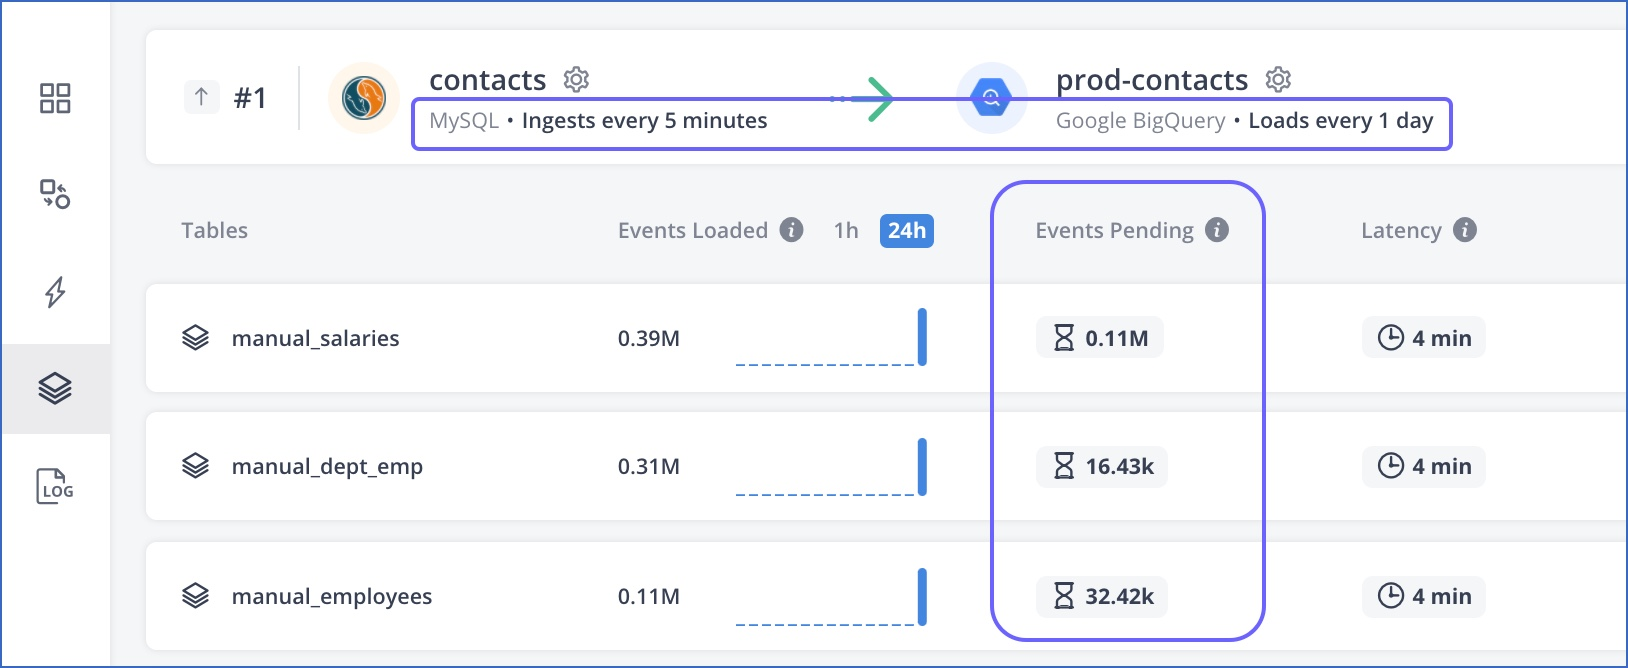 Check Event load status in Pipeline